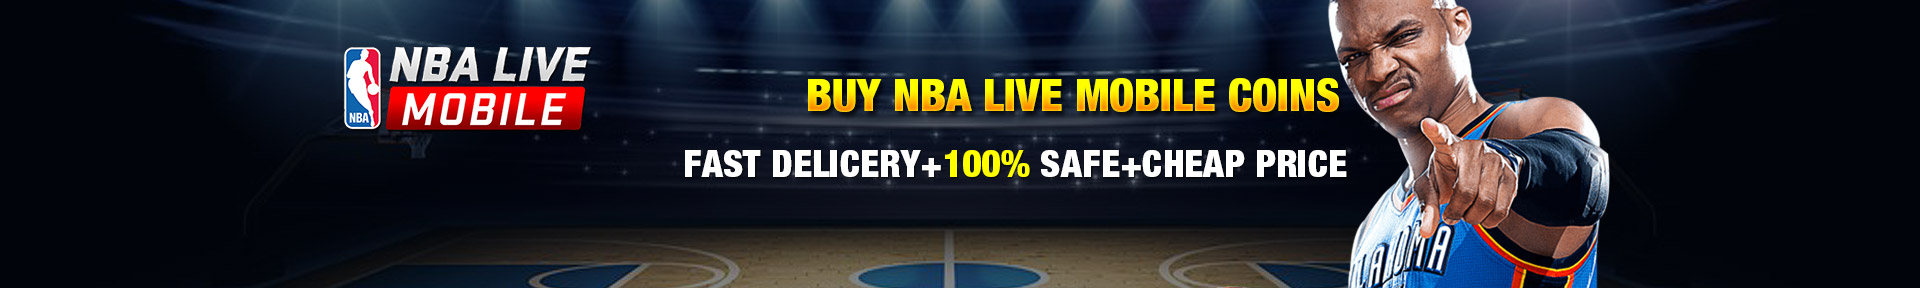 NBA Live Mobile 19 Coins